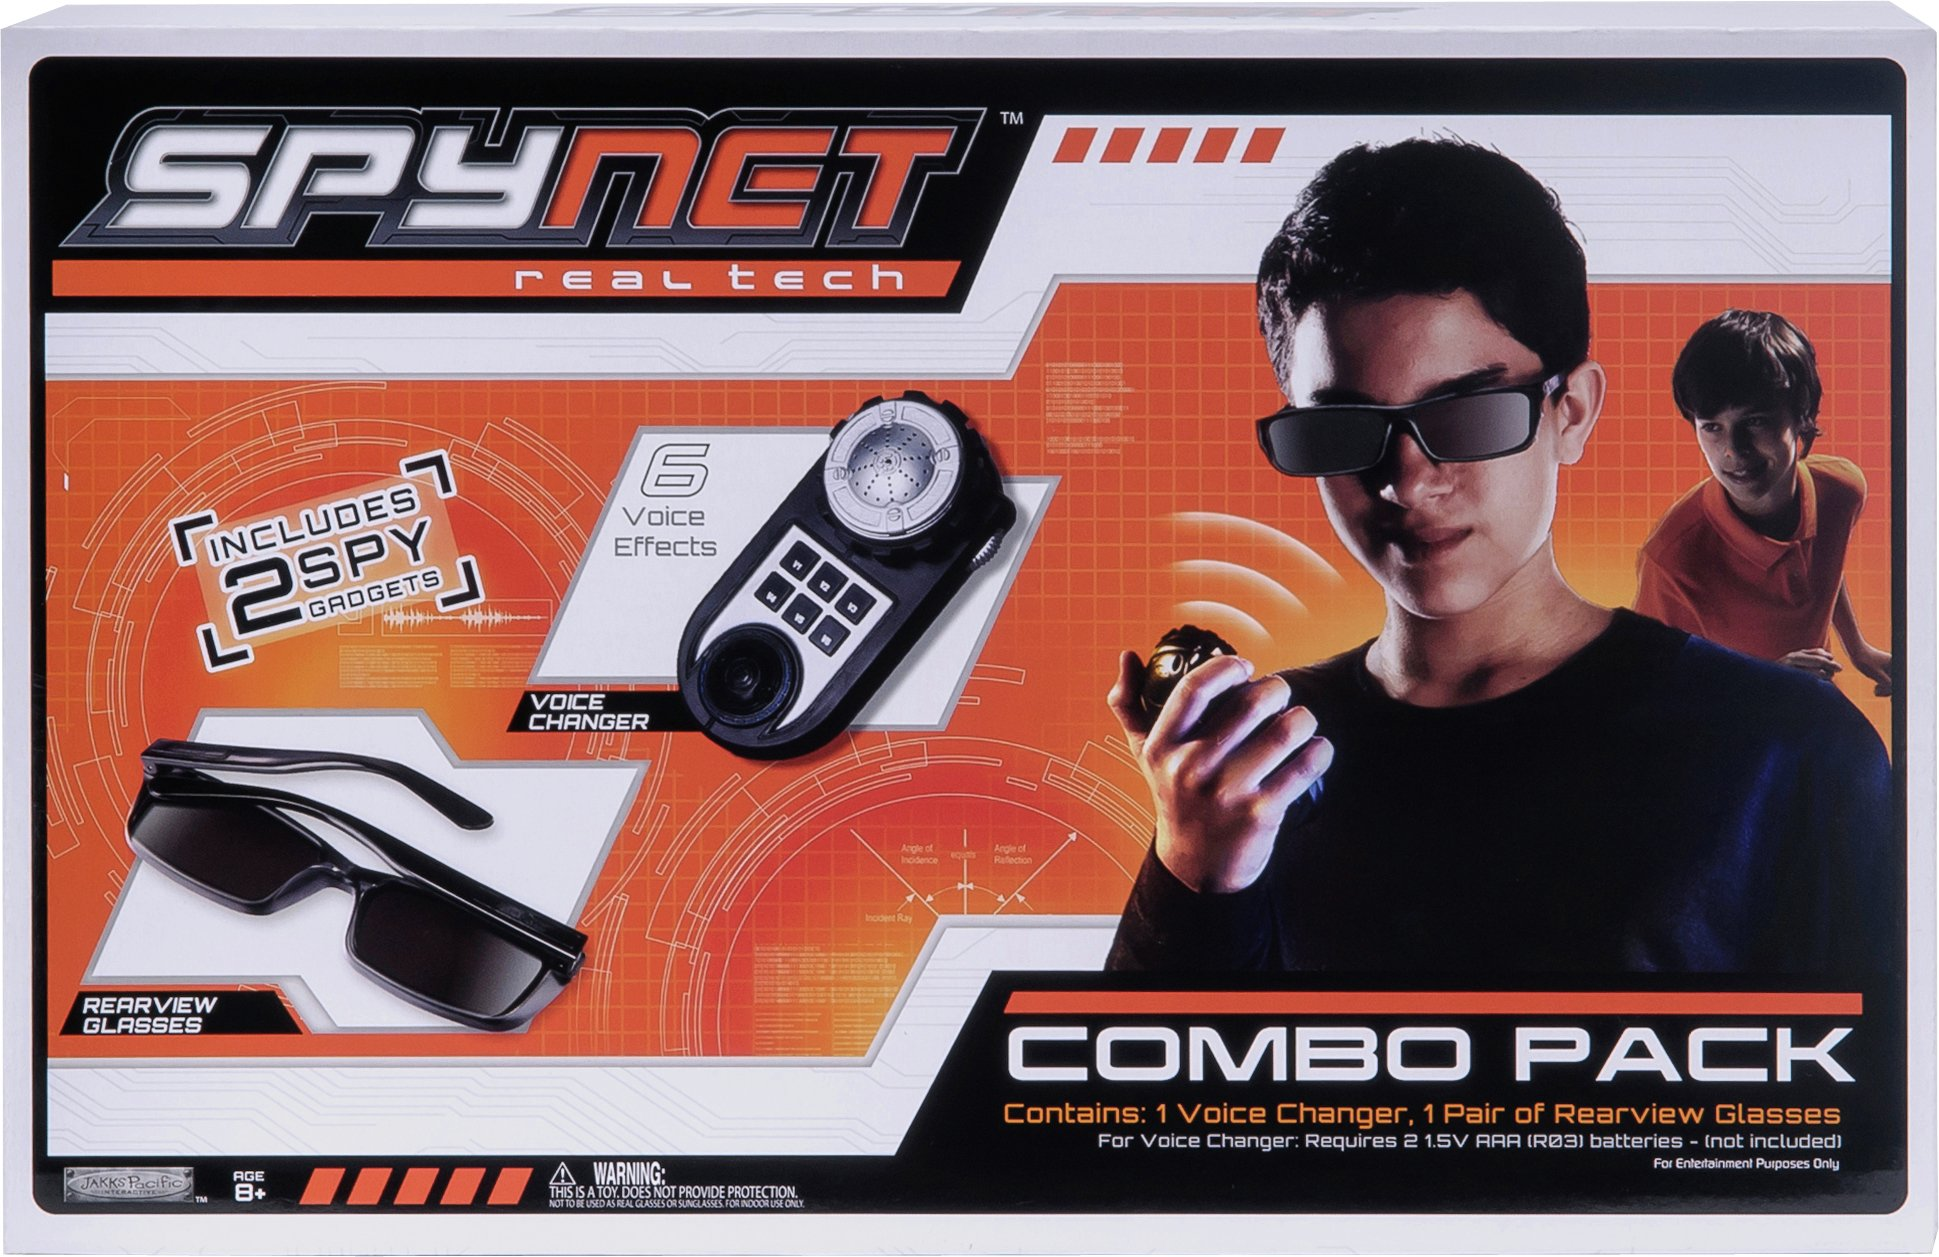 SpyNet Voice Changer and Rear View Glasses